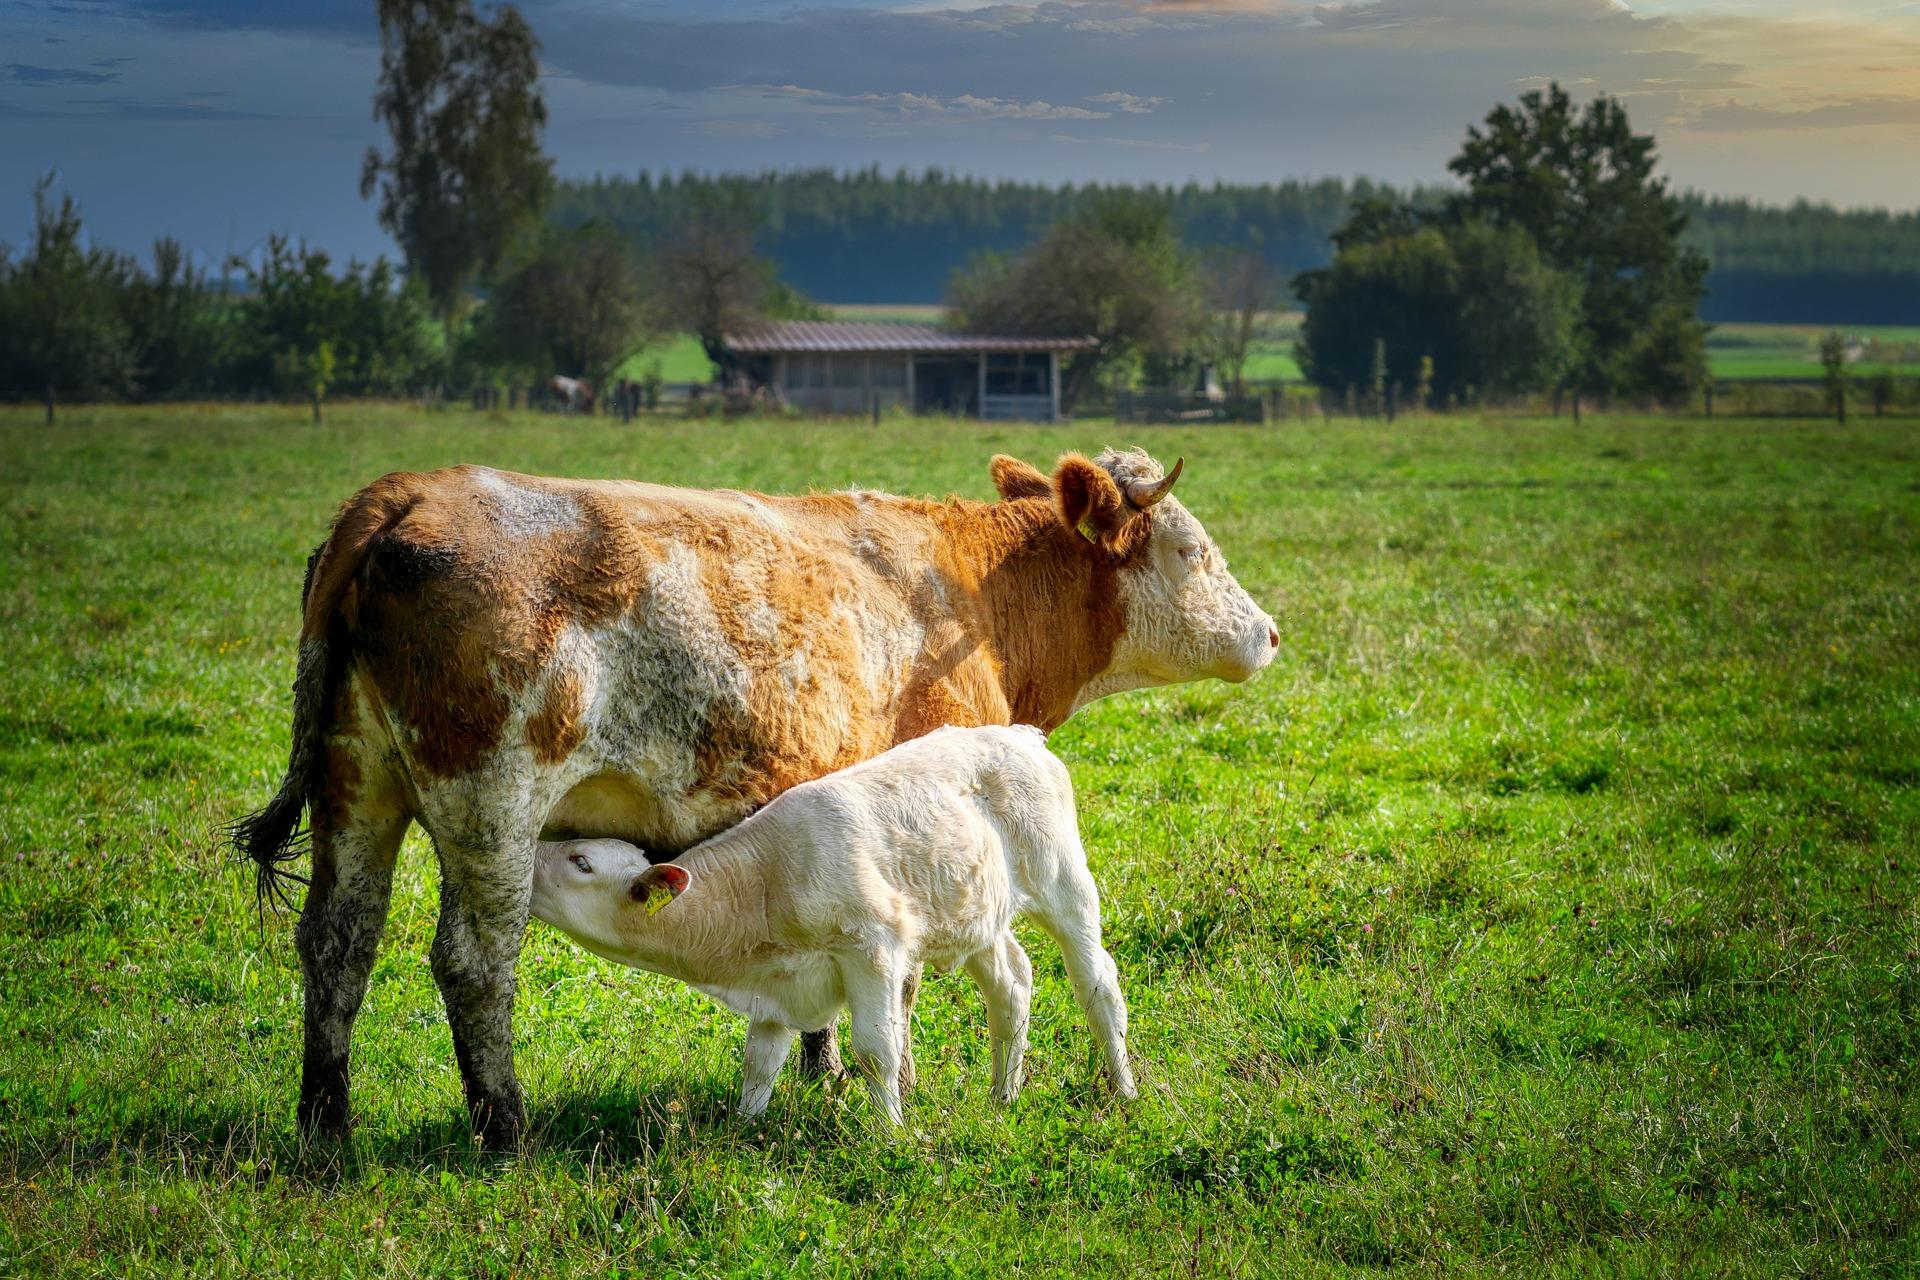 Cow and calf in a field